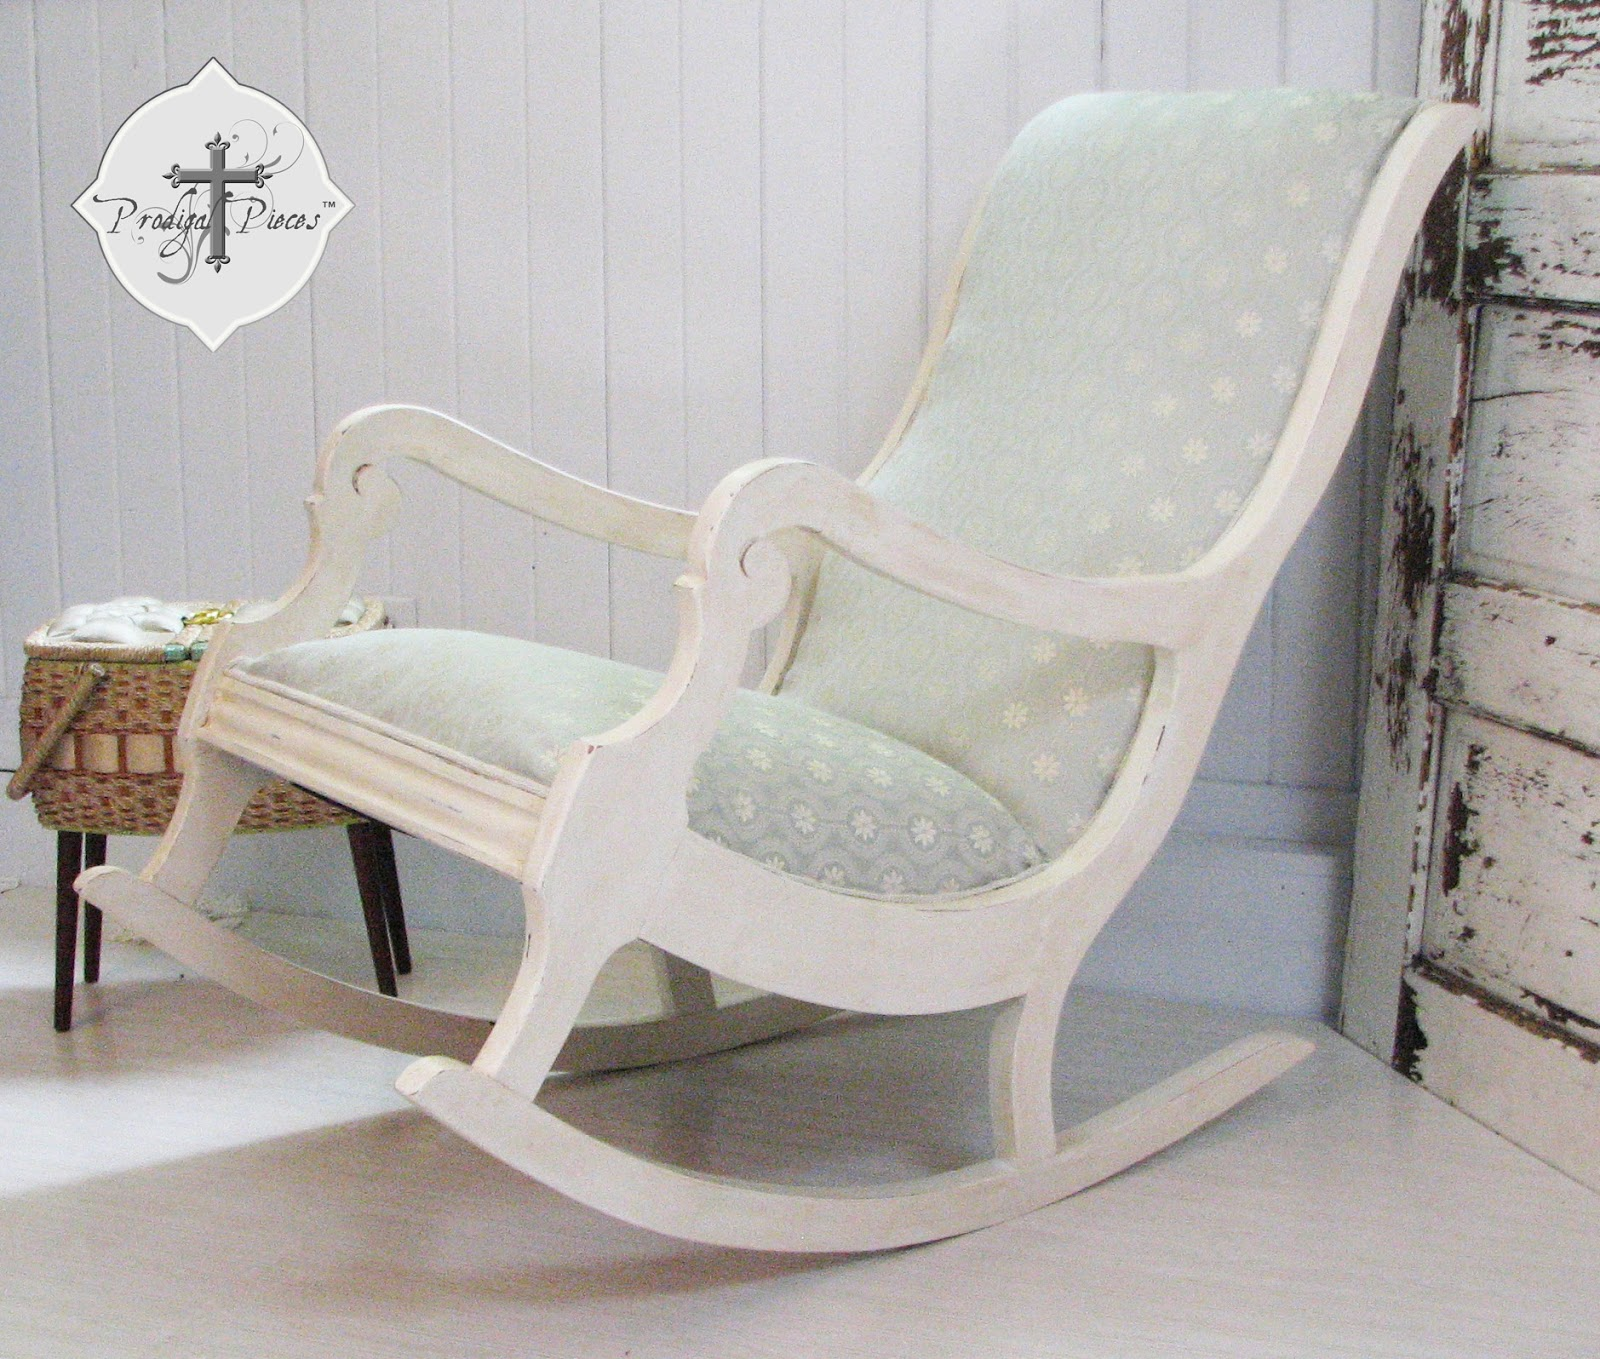 How to Reupholster & Paint a Rocking Chair Part 3 Prodigal Pieces